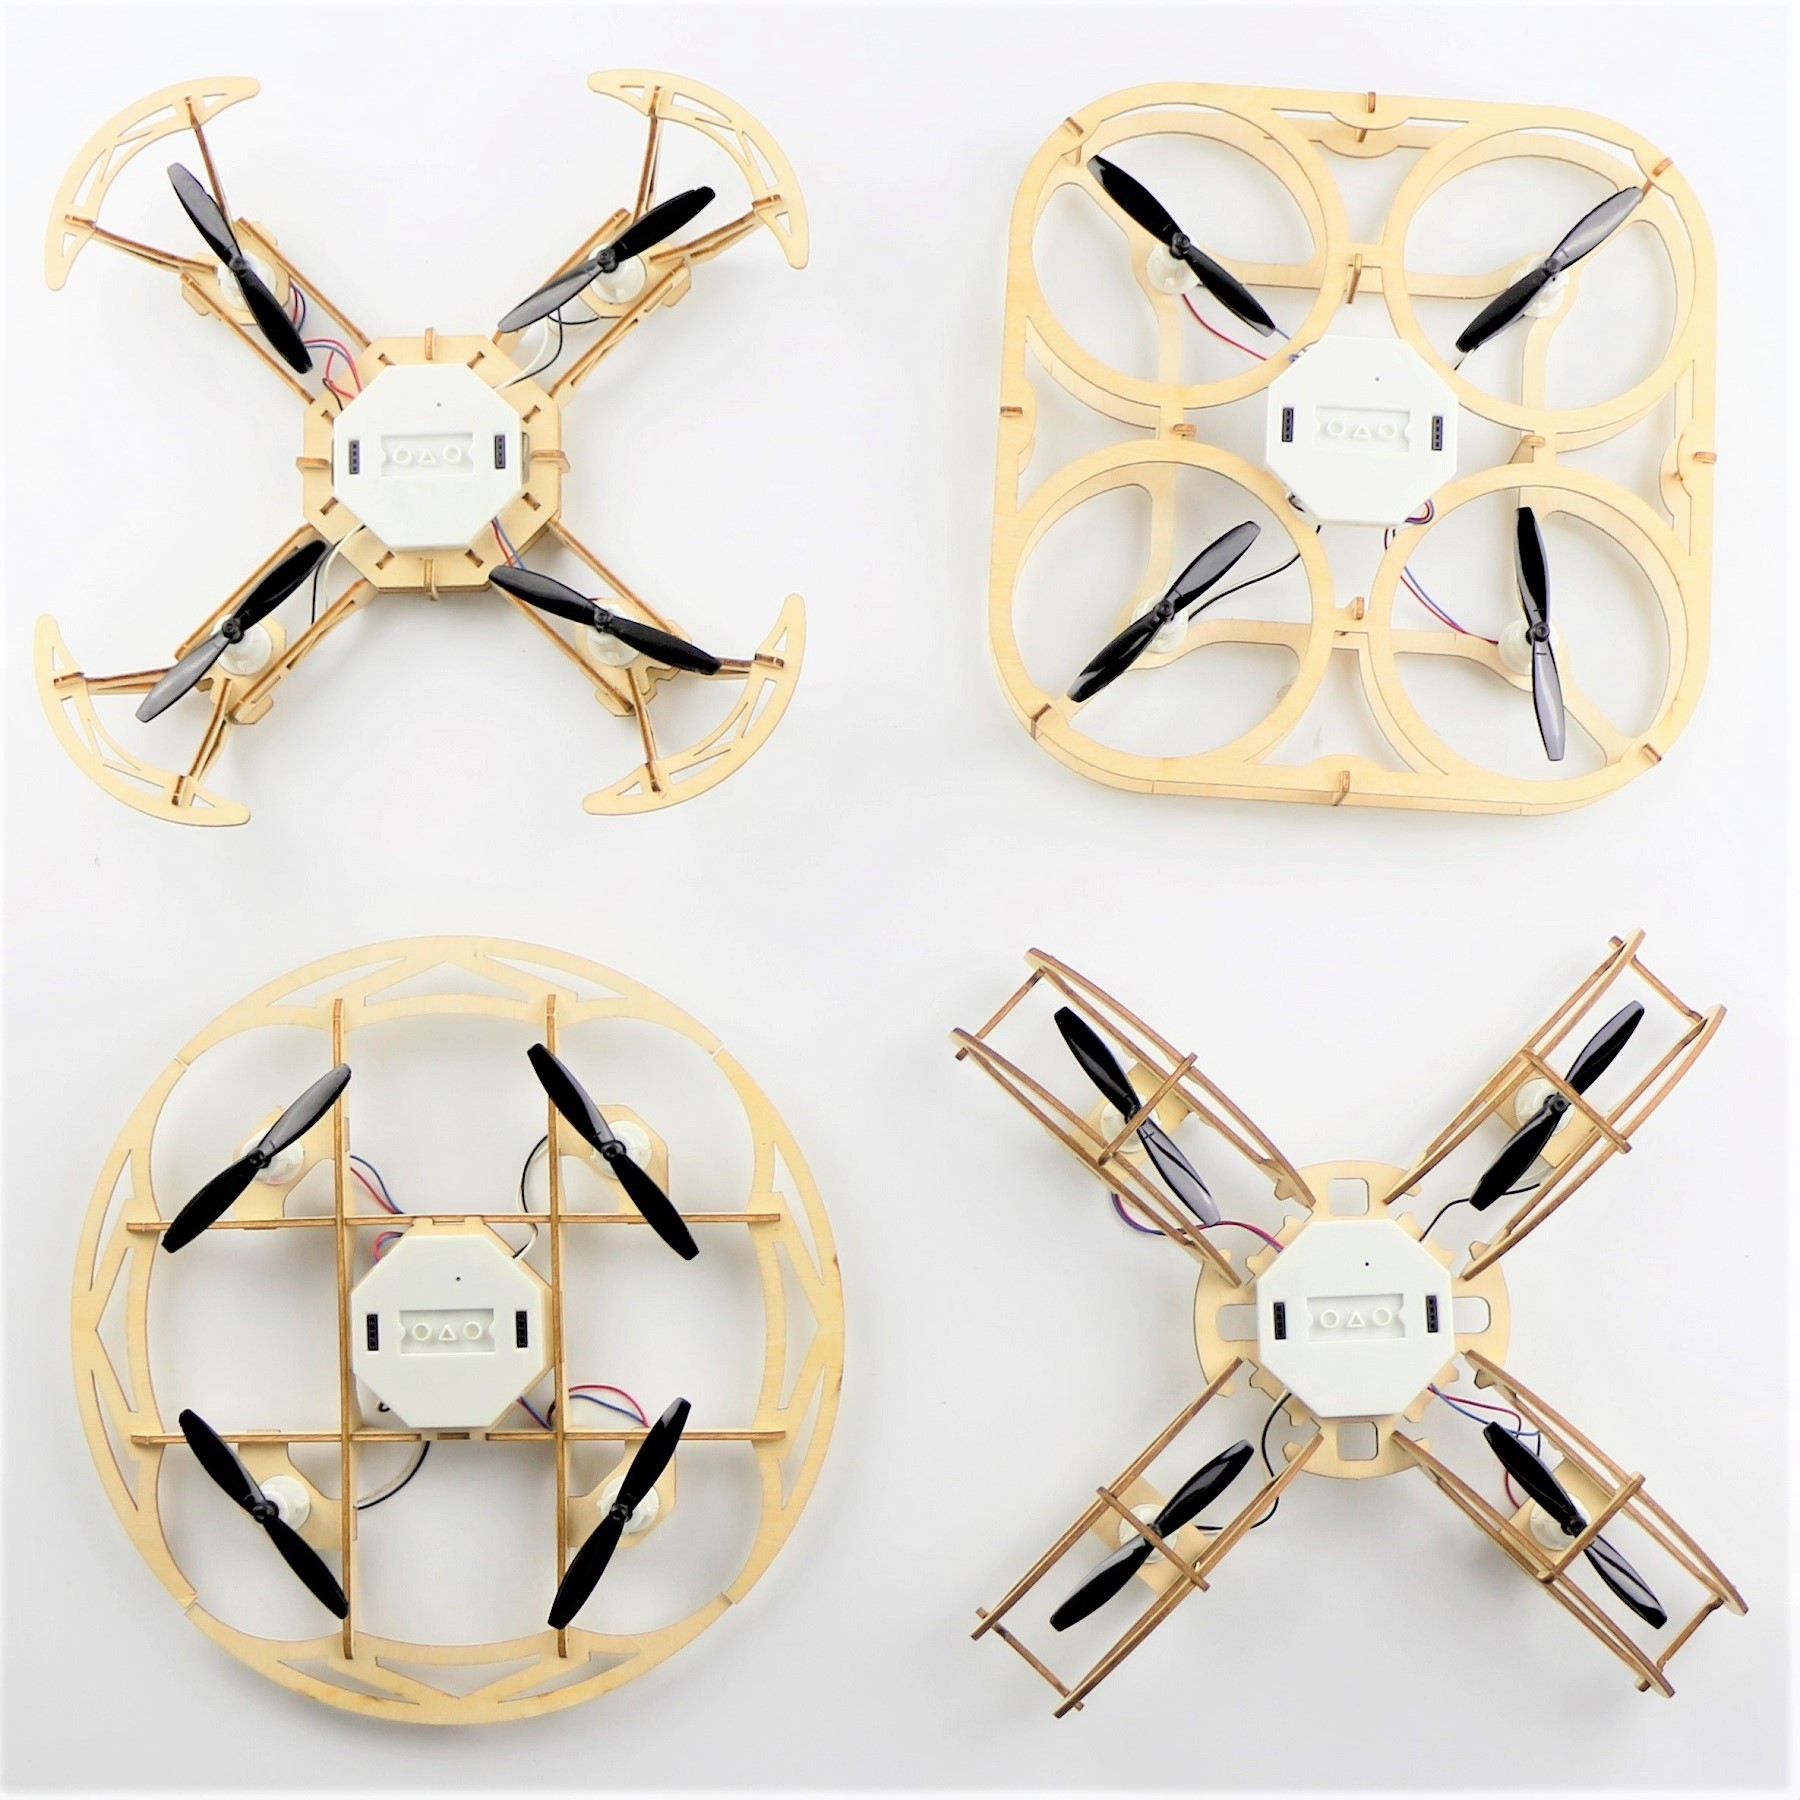 Assembled wood drone for STEAM education